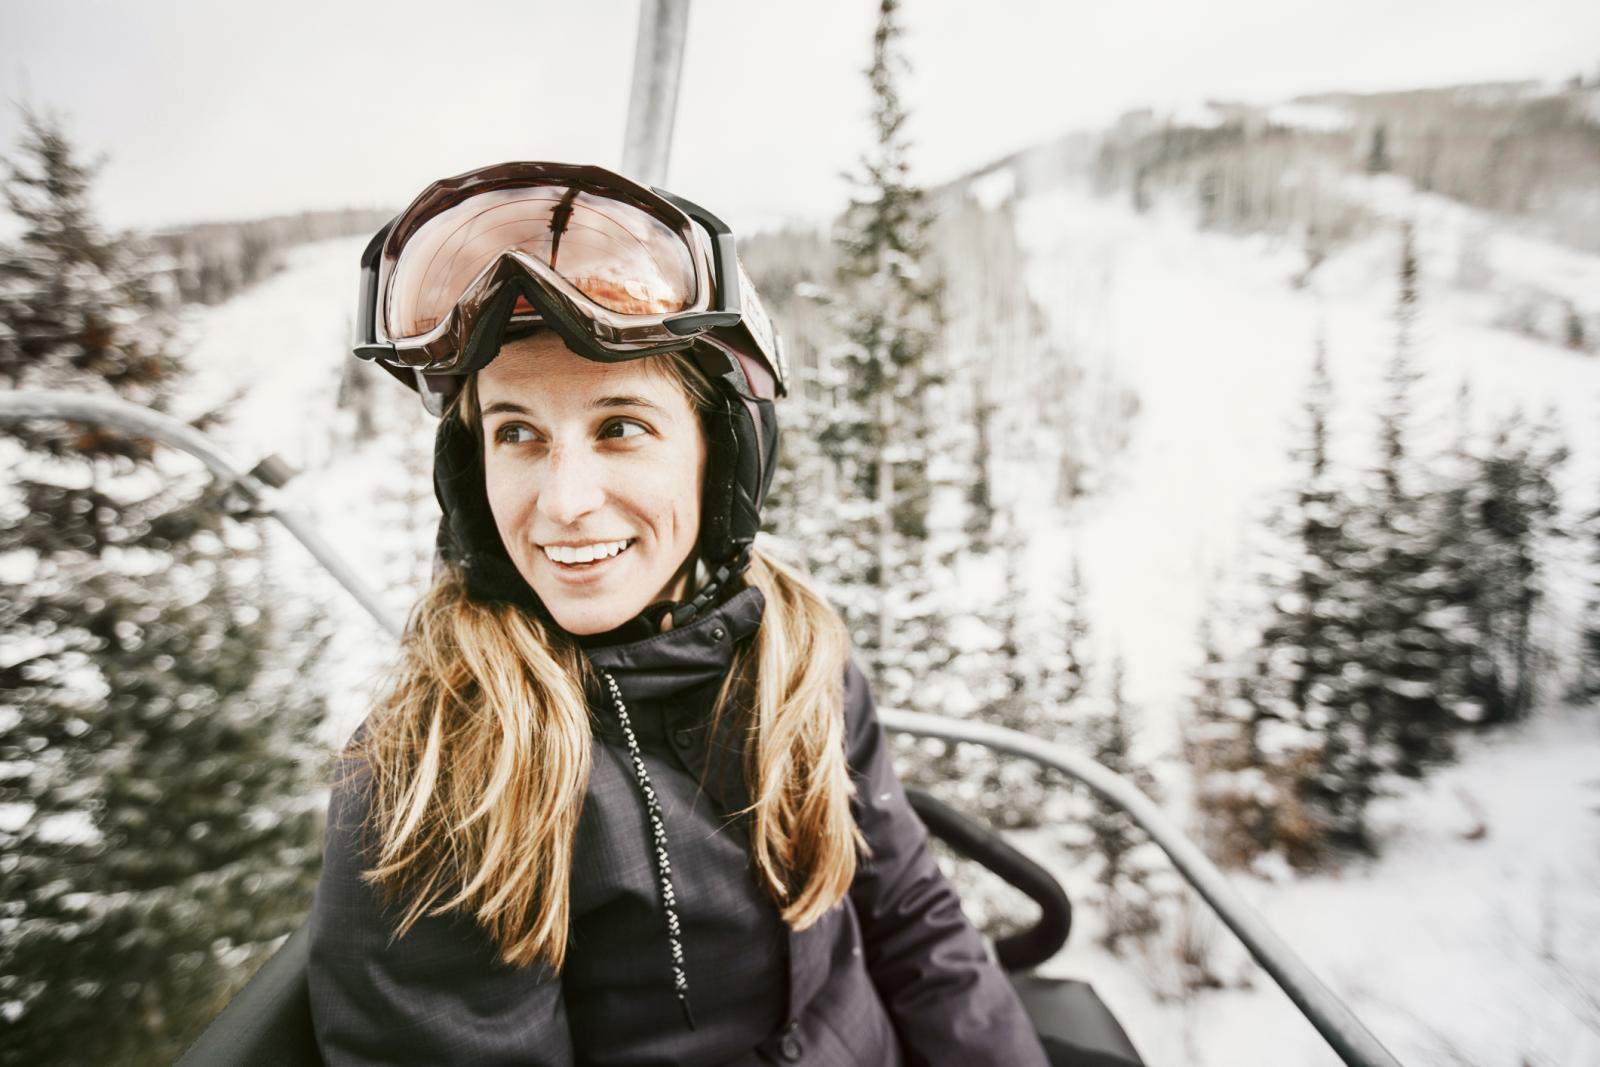 Smiling woman riding ski lift